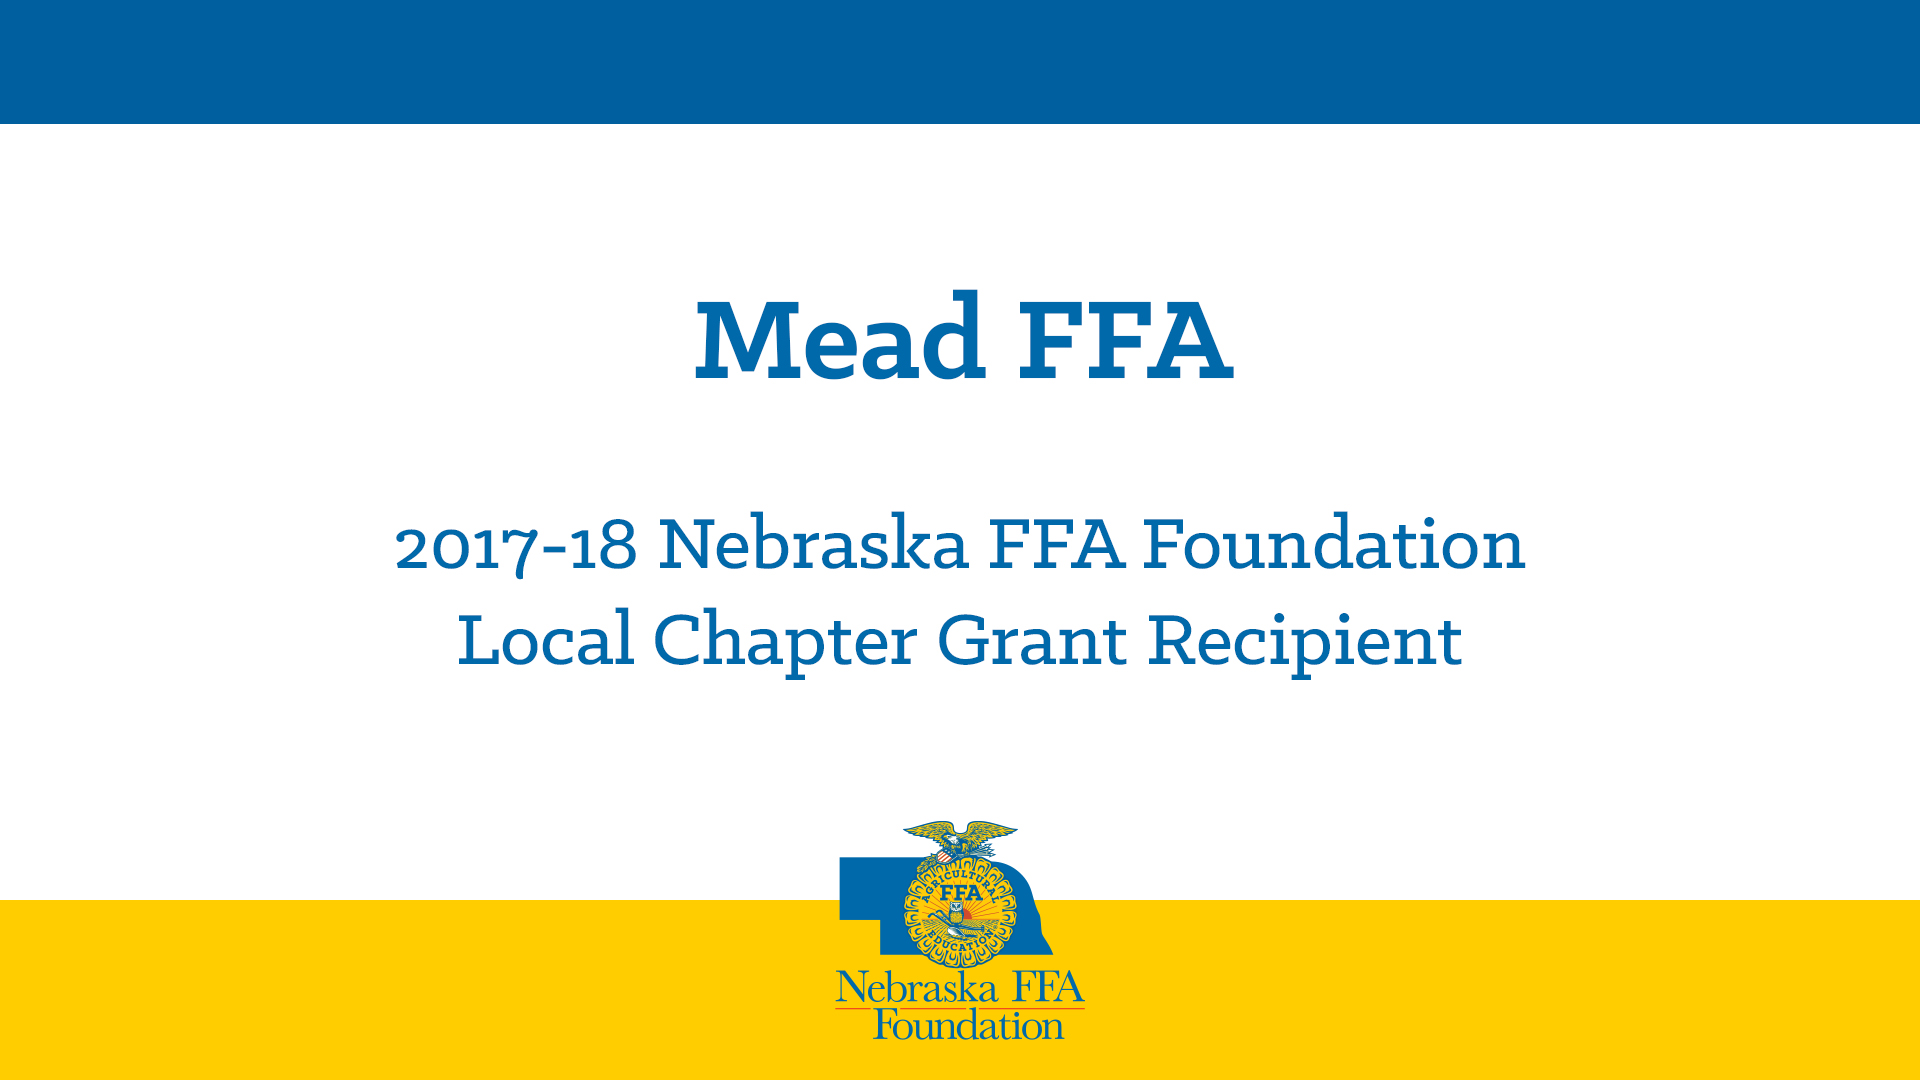 2017 Local Chapter Grant Recipient: Mead